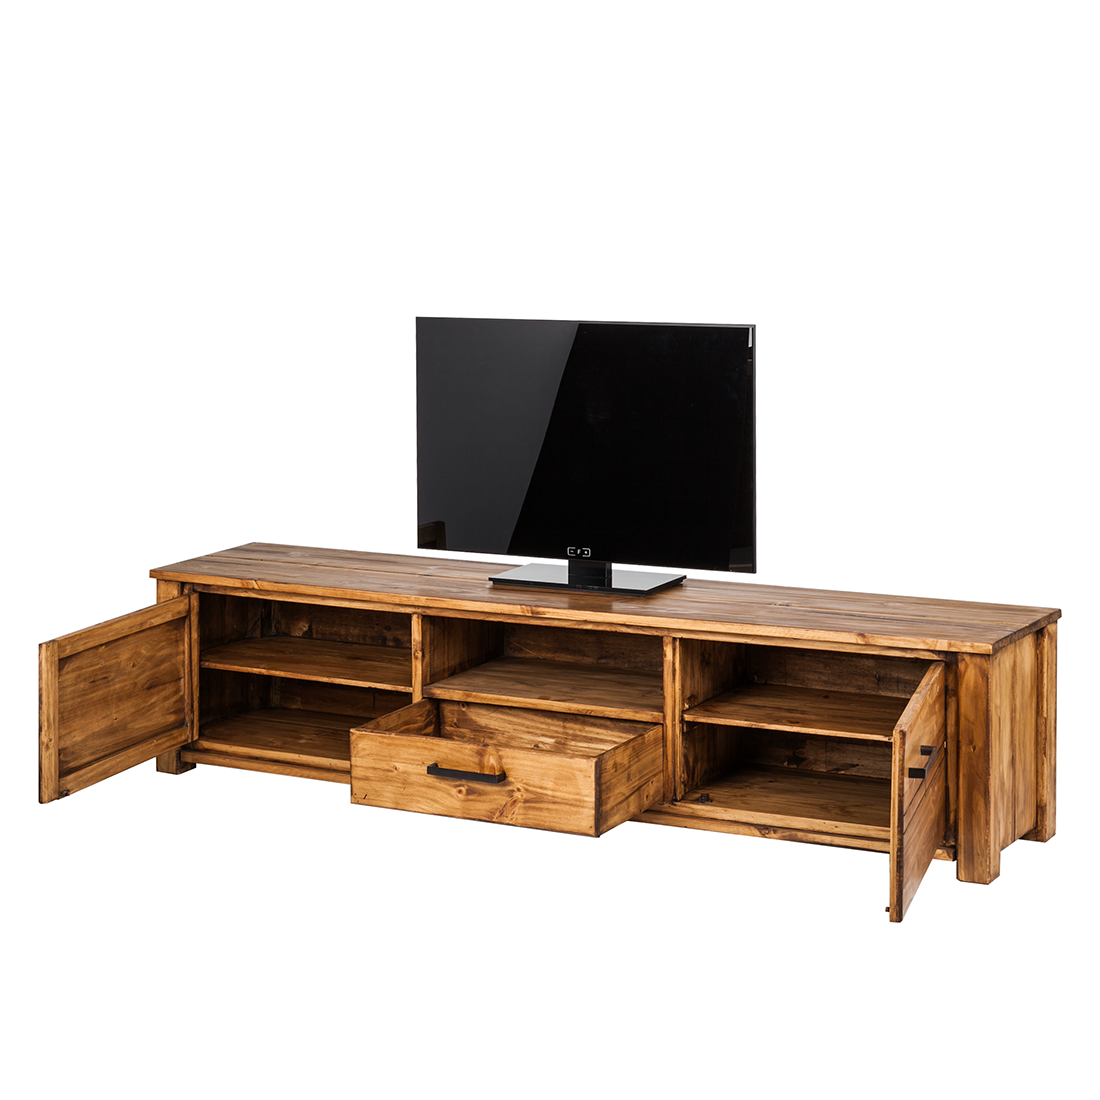 lowboard pinie massivholz fernsehtisch sideboard tv rack. Black Bedroom Furniture Sets. Home Design Ideas